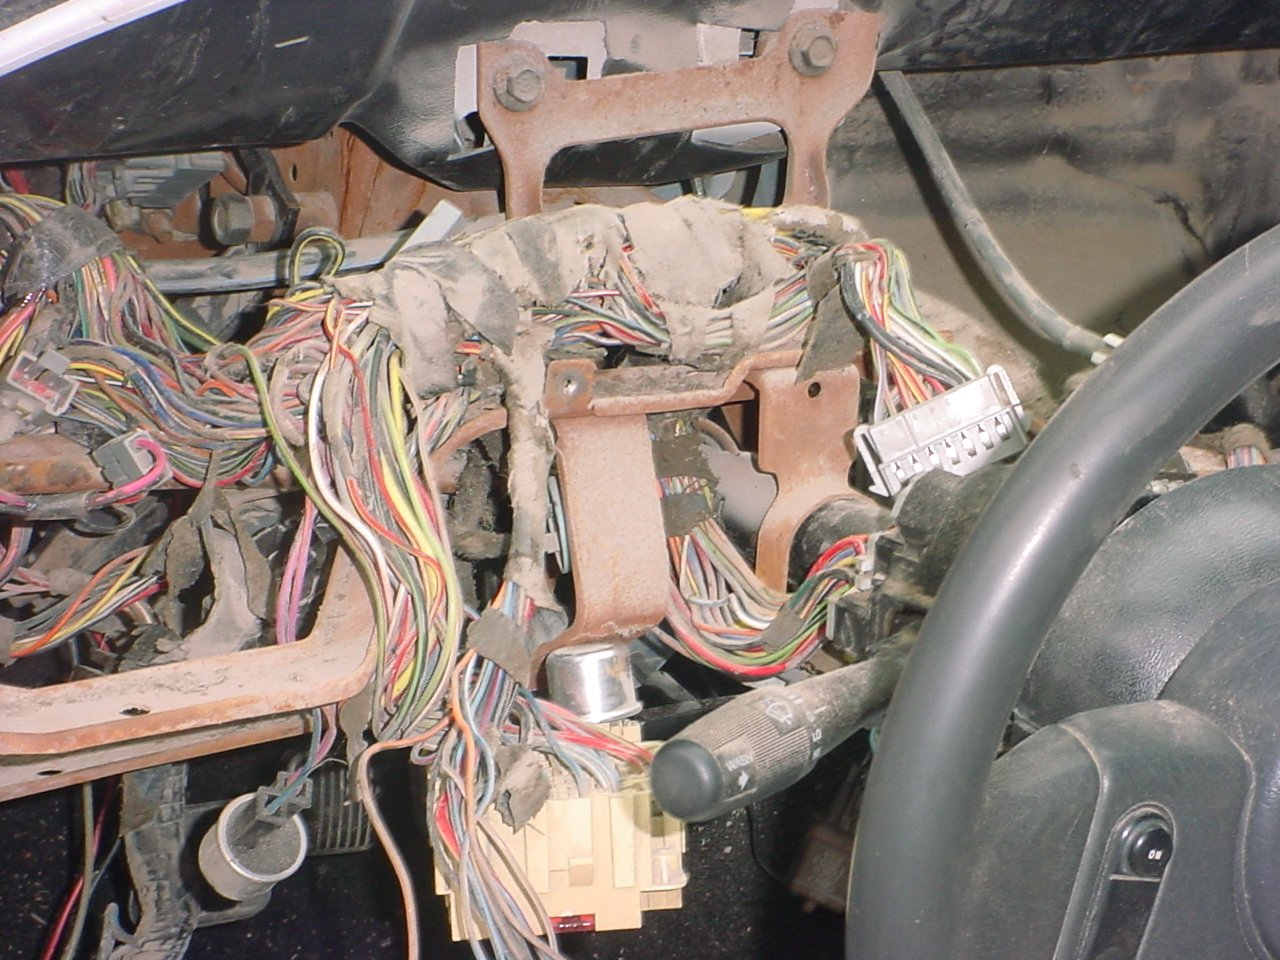 12808d1134269196 underdash wiring diagram dsc01663 underdash wiring diagram ford mustang forum 1989 Mustang Alternator Wiring Diagram at creativeand.co